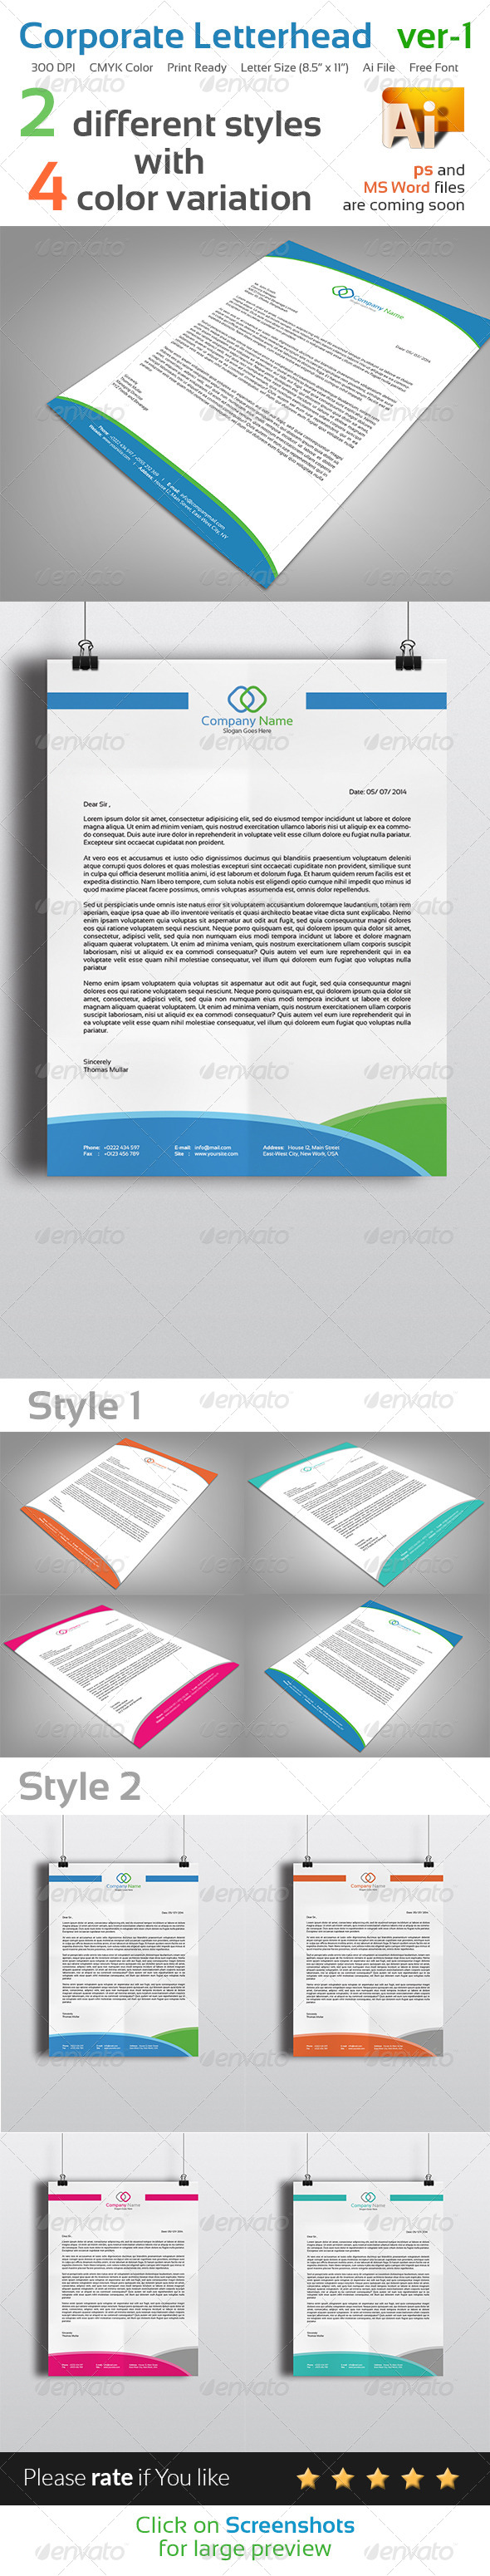 GraphicRiver Corporate Letterhead Ver-1 8205250